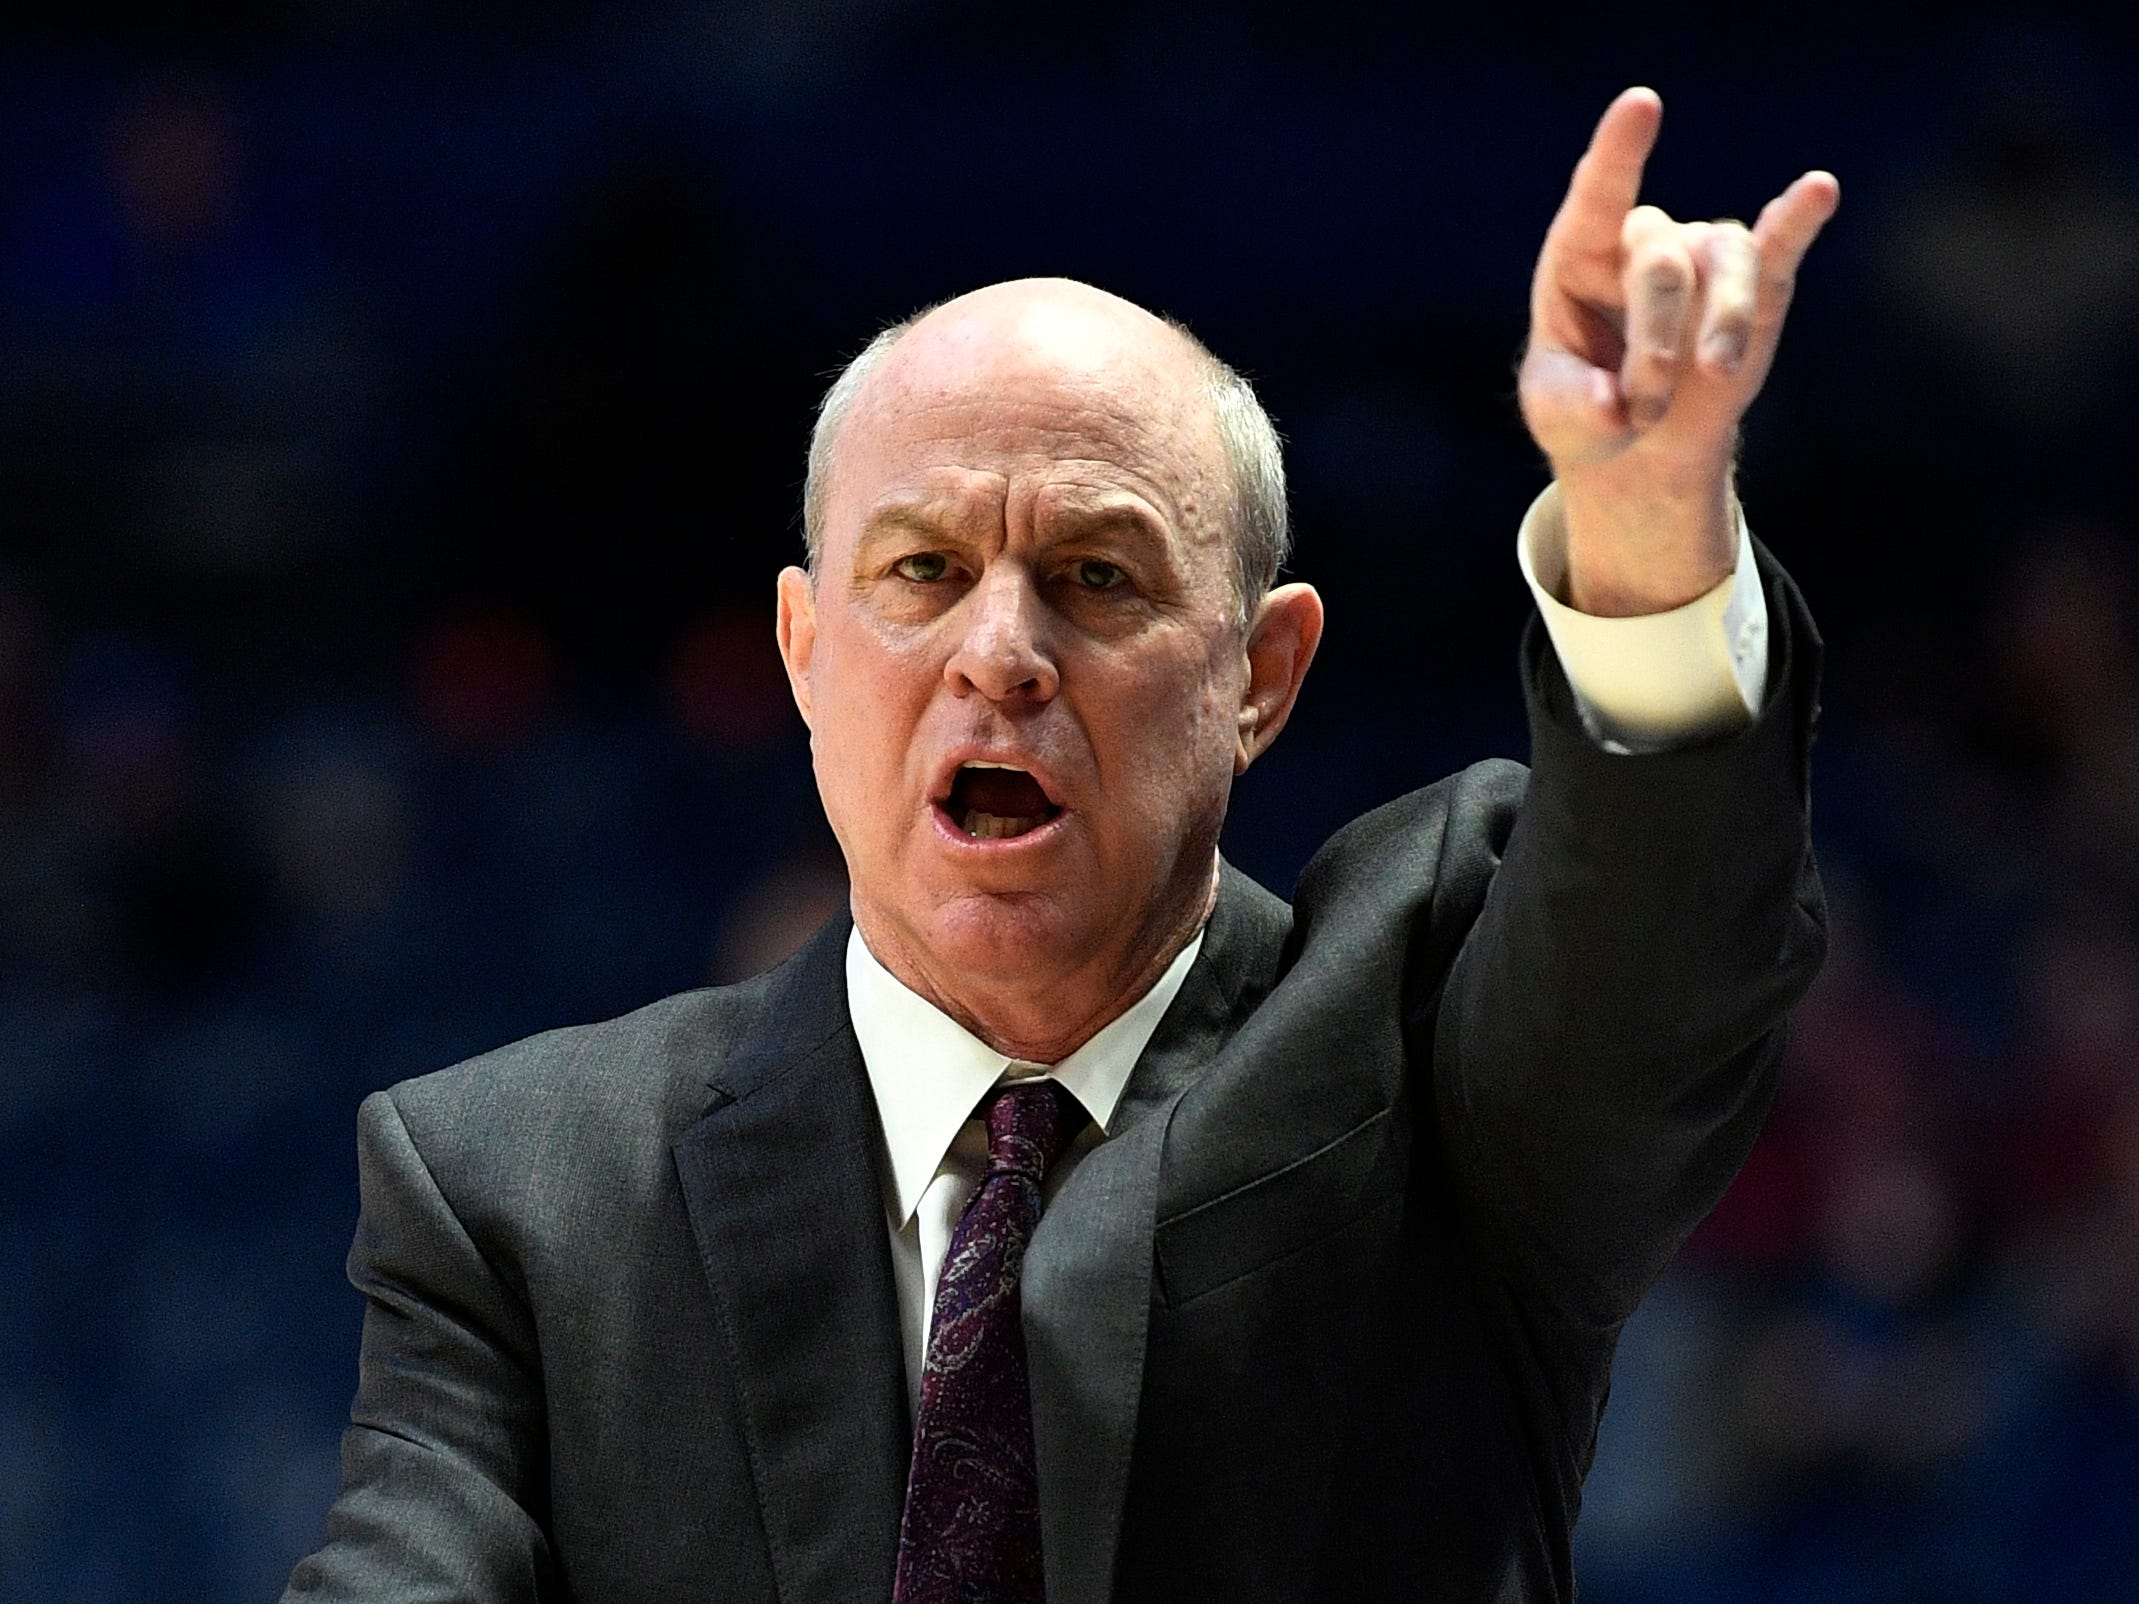 Mississippi State head coach Ben Howland instructs his team during the second half of the SEC Men's Basketball Tournament game against Texas A&M at Bridgestone Arena in Nashville, Tenn., Thursday, March 14, 2019.